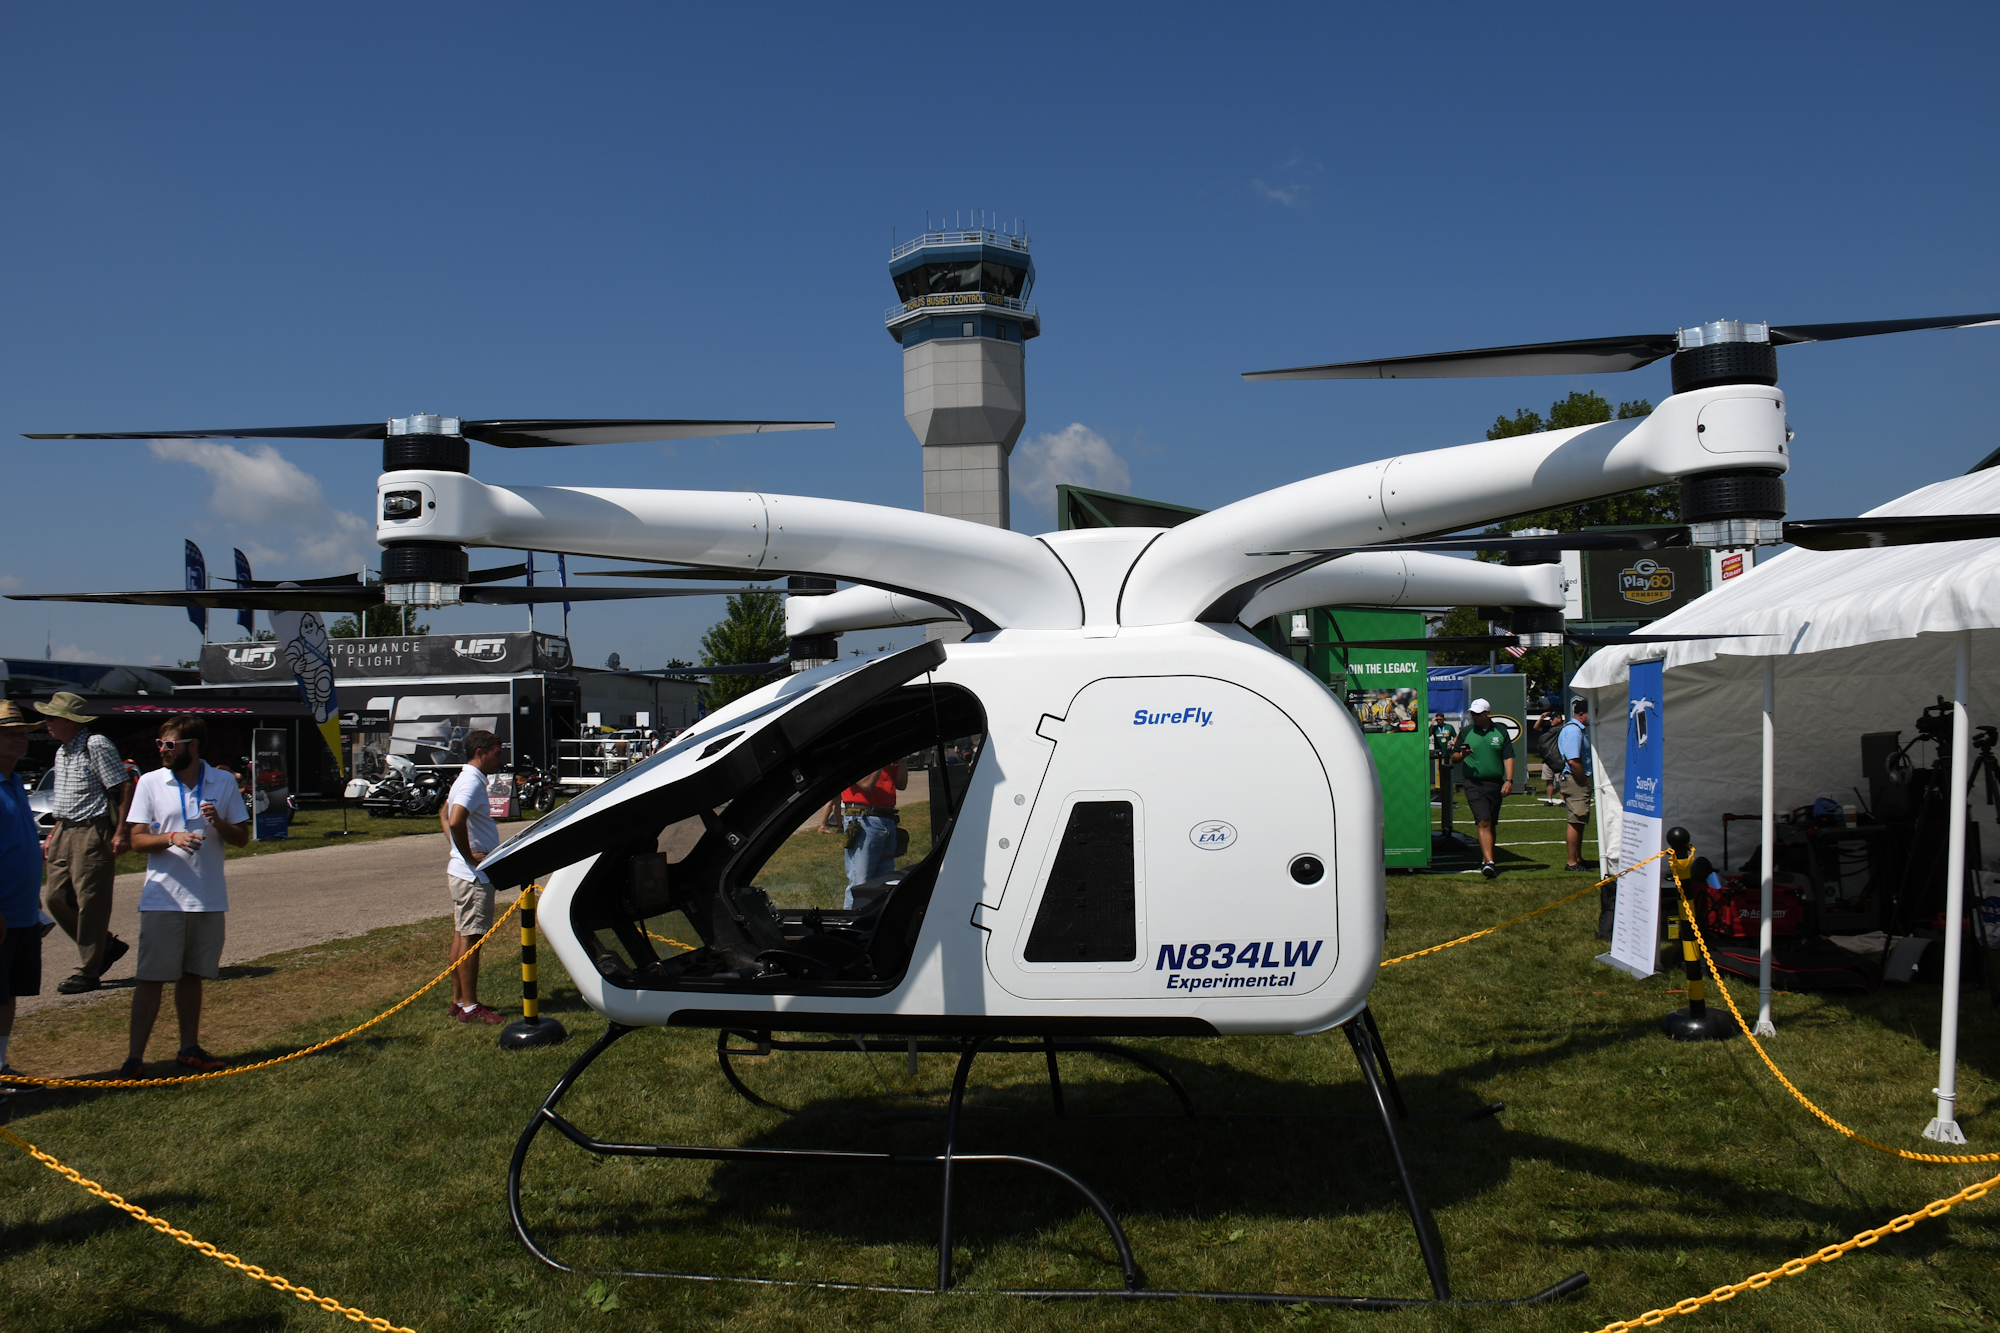 Workhorse Surefly on display at Oshkosh 2018 - Vertical Flight Photo